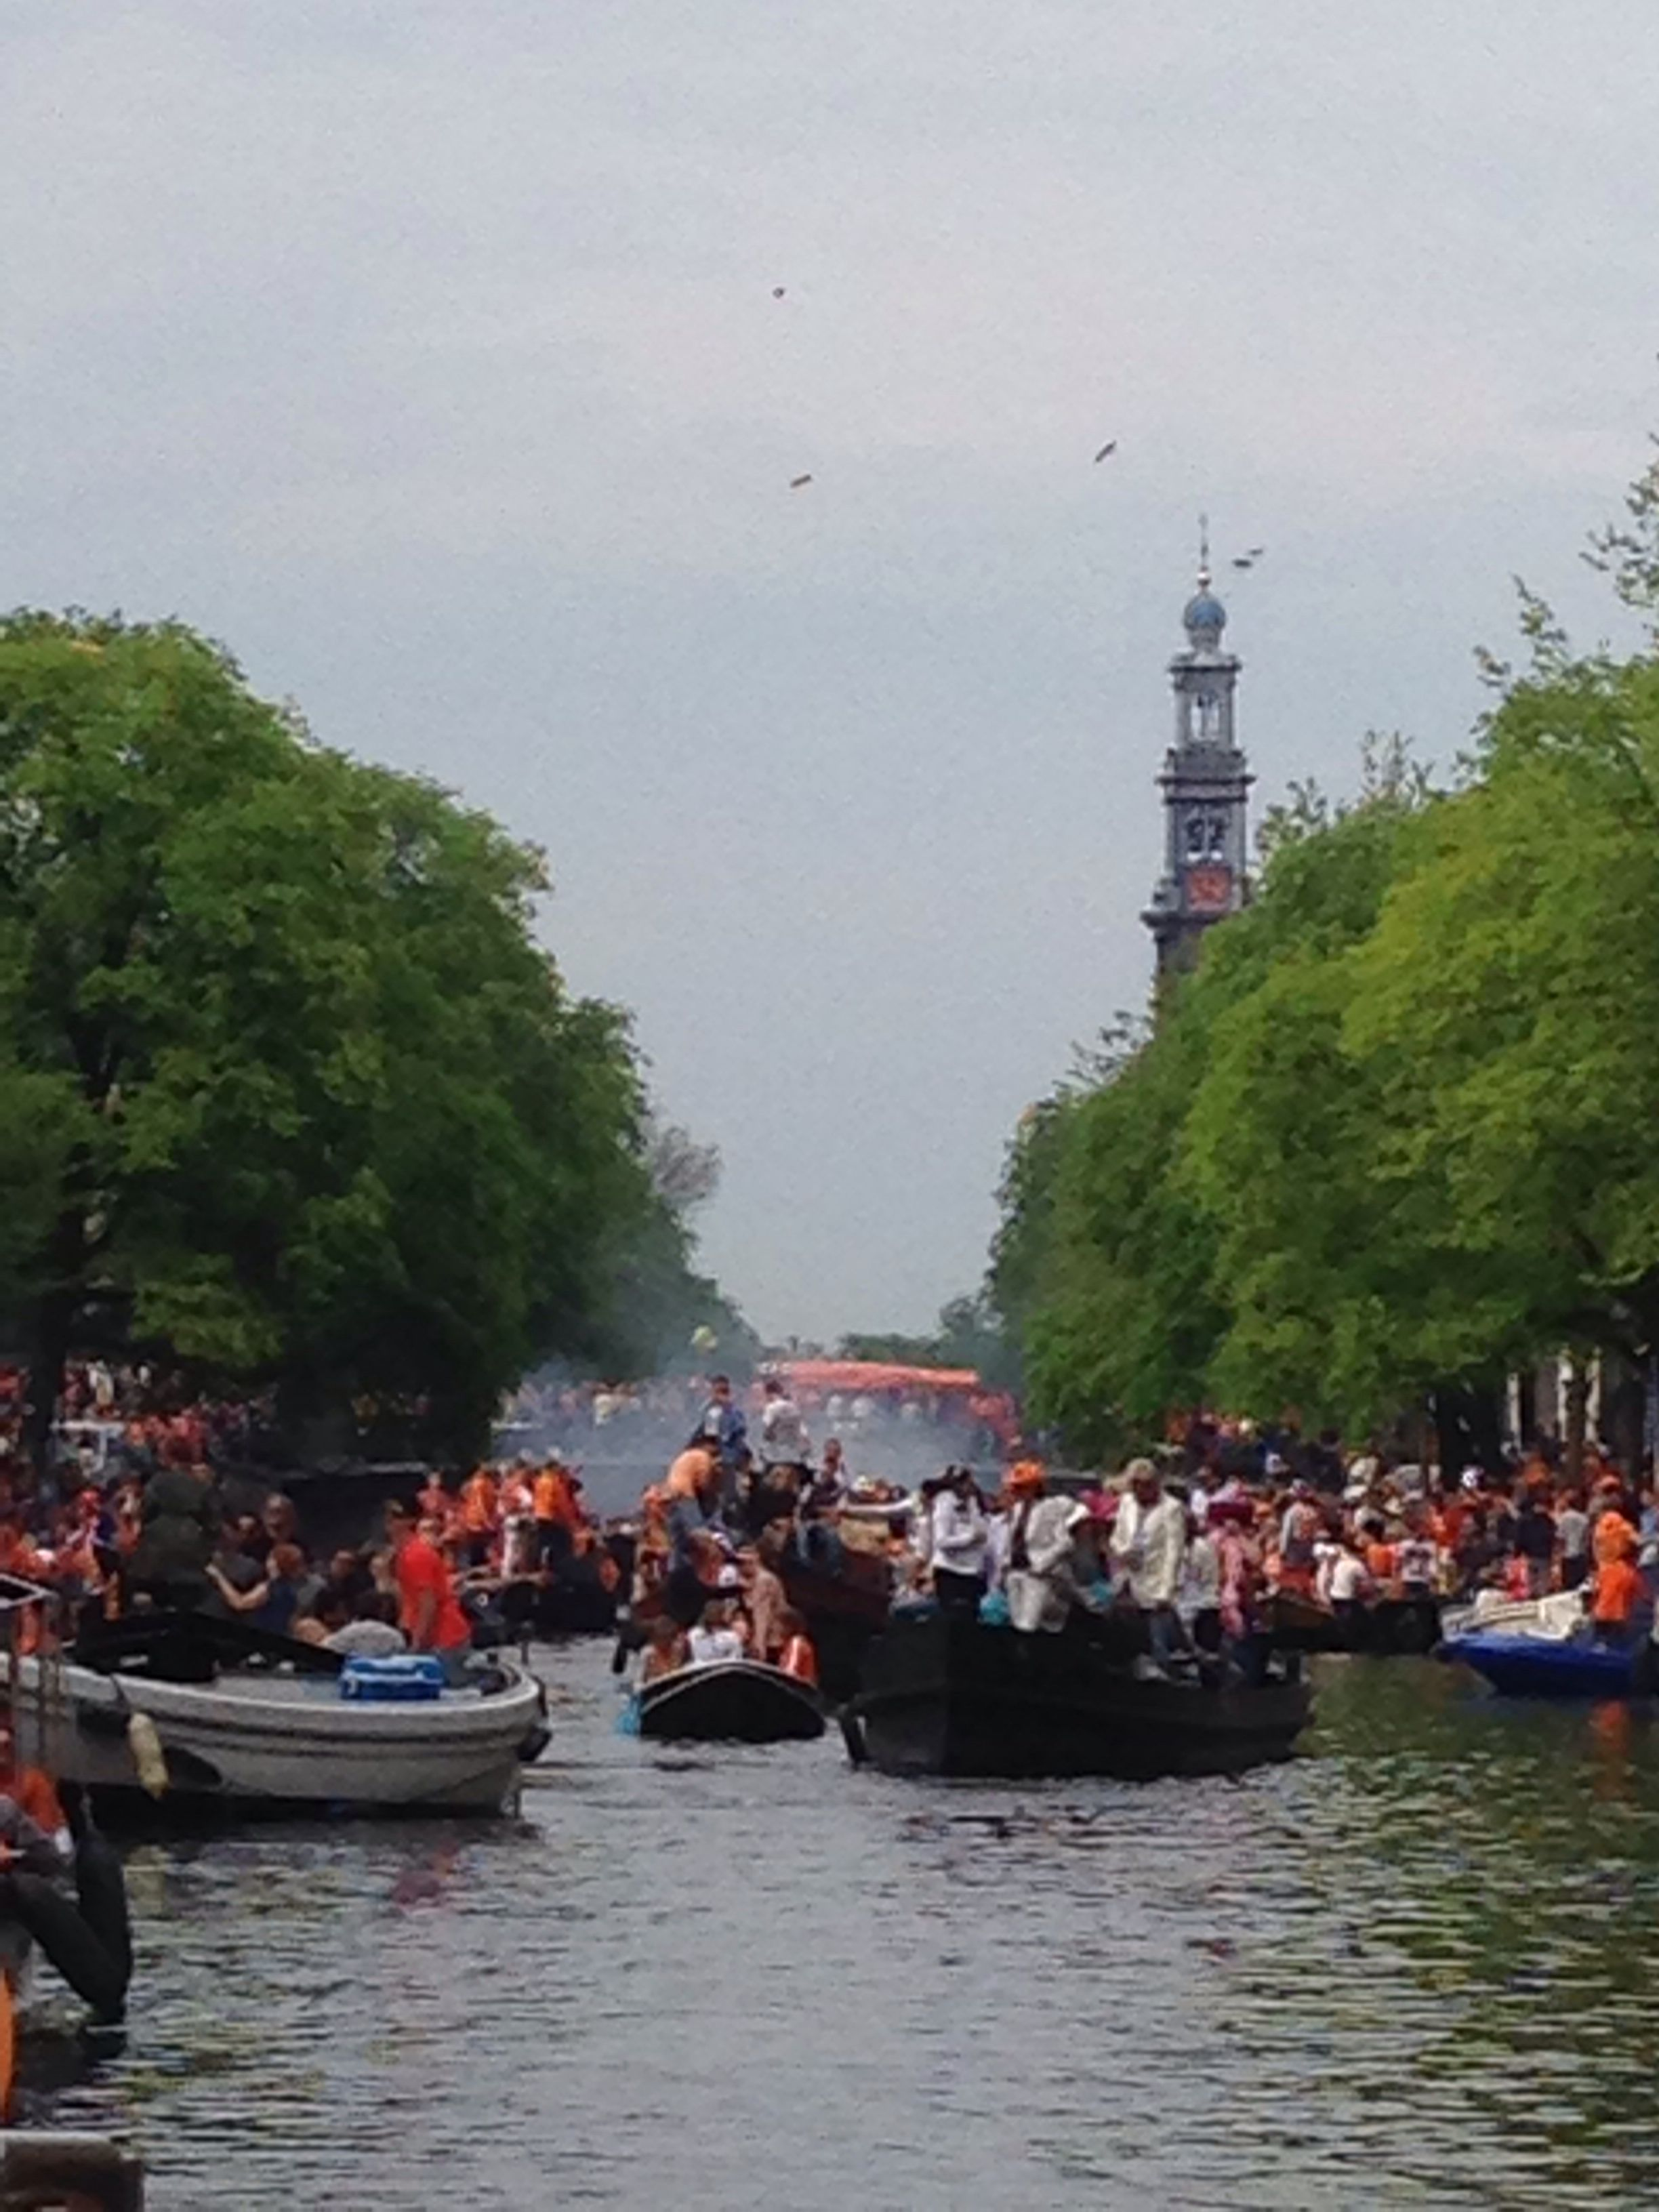 The King's day, the Netherlands